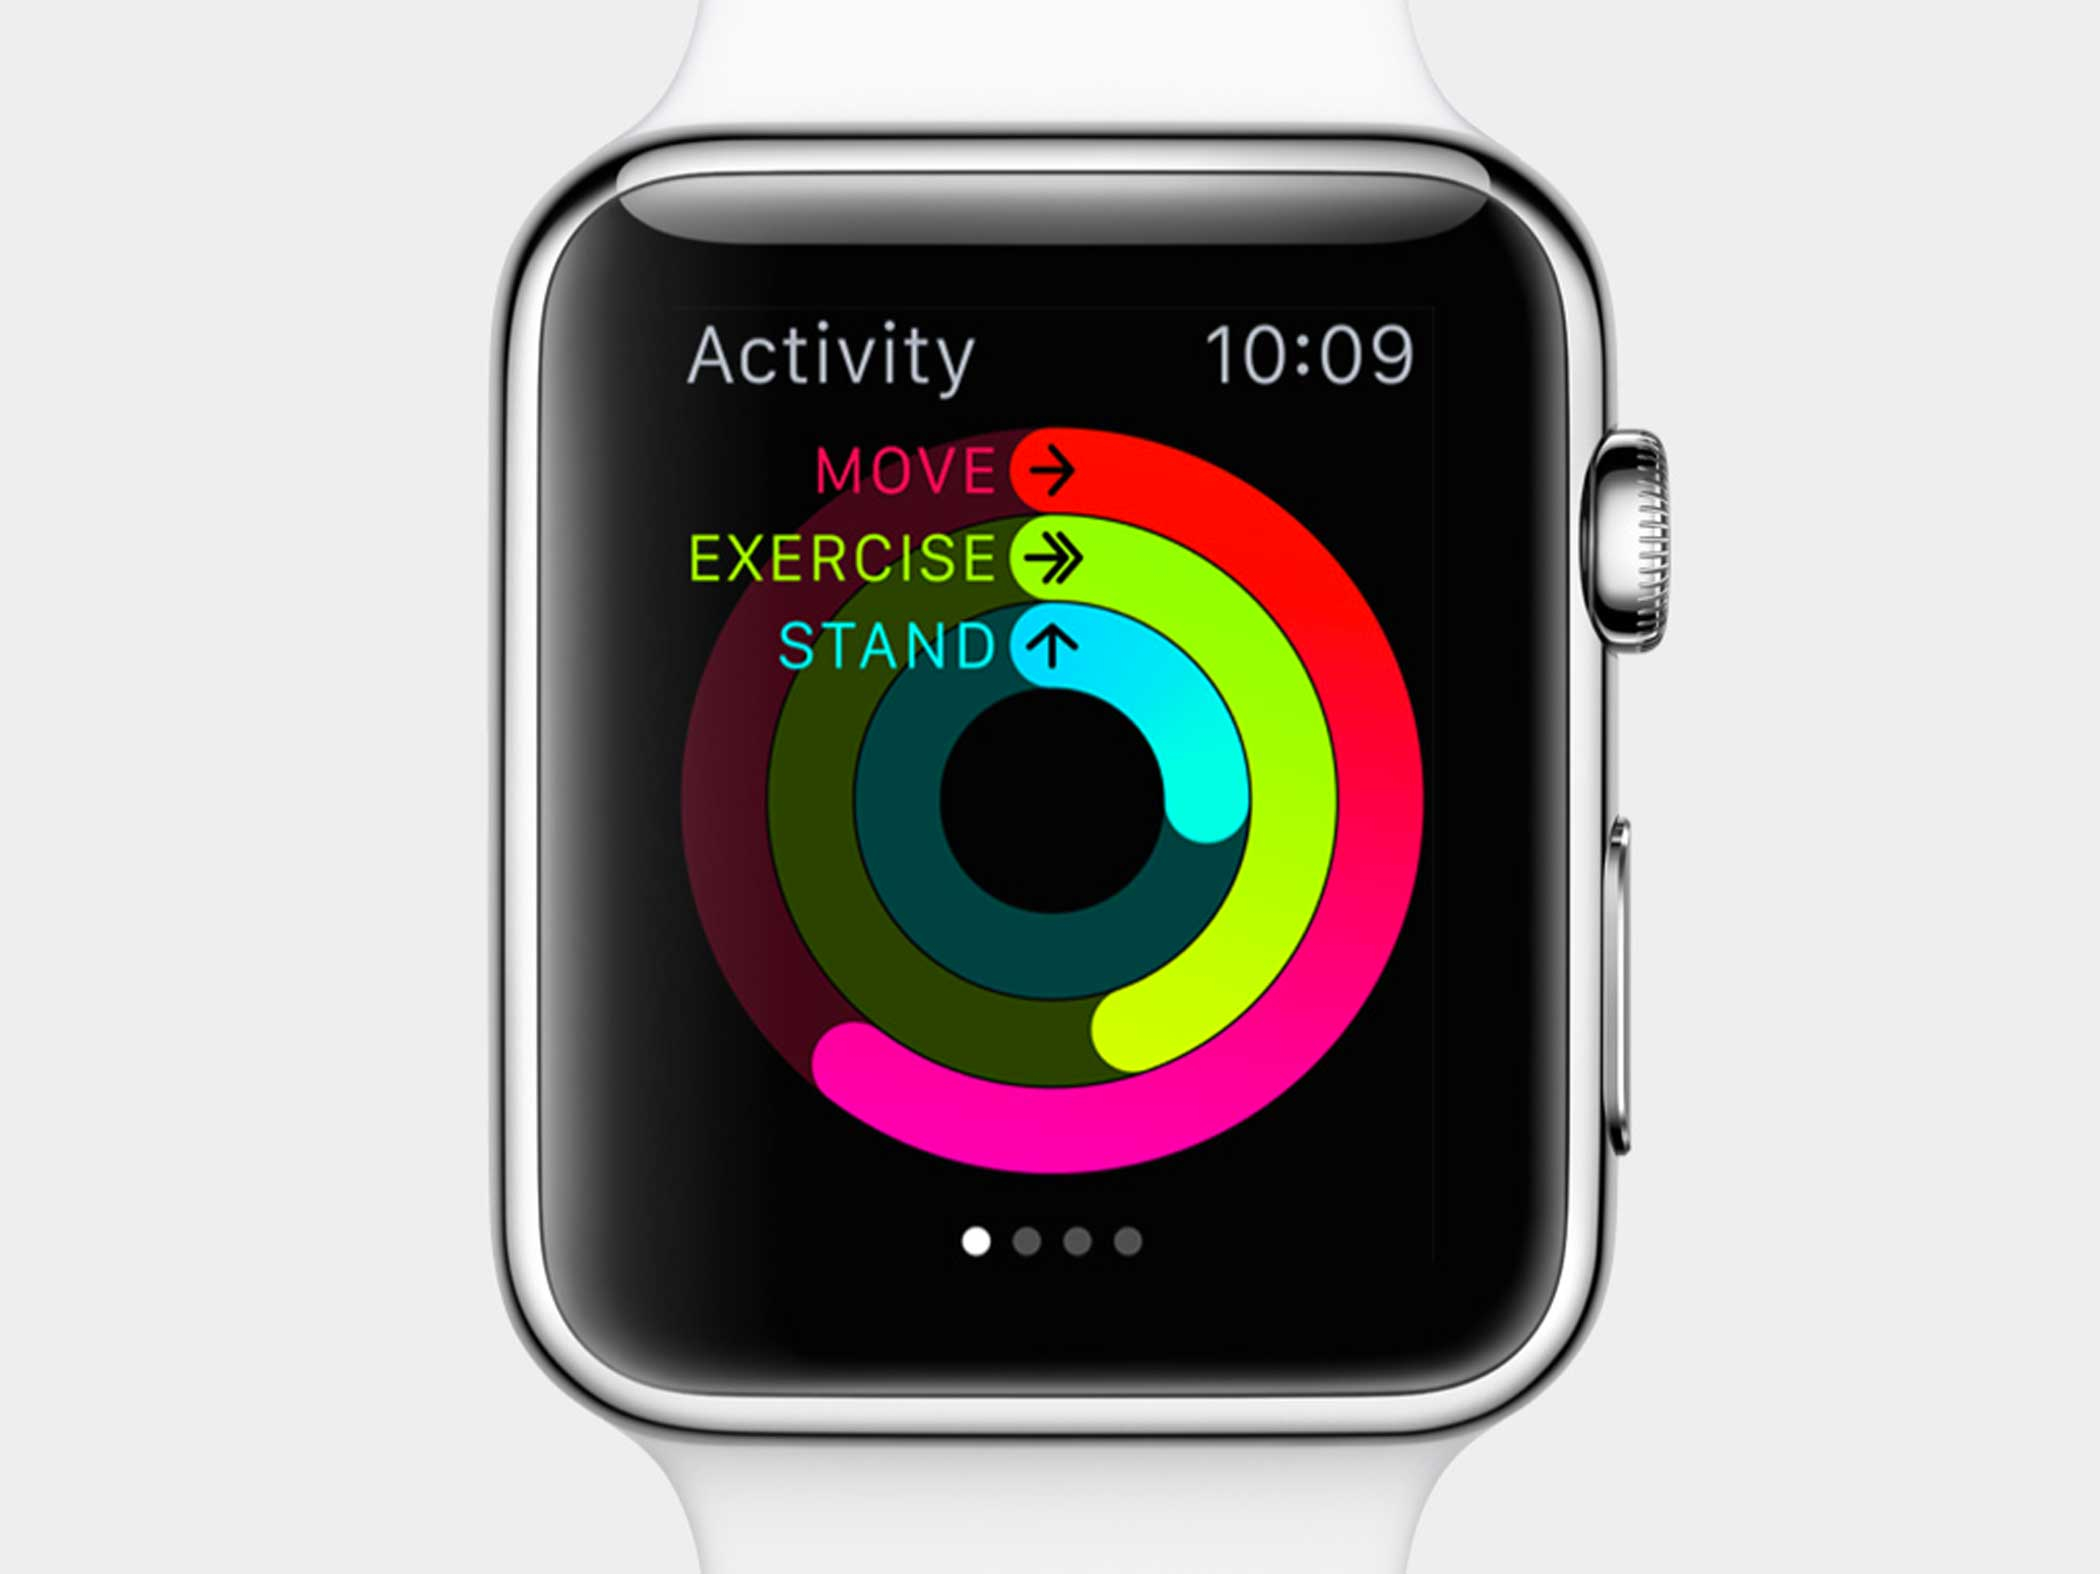 Track your activity using the Workout app.